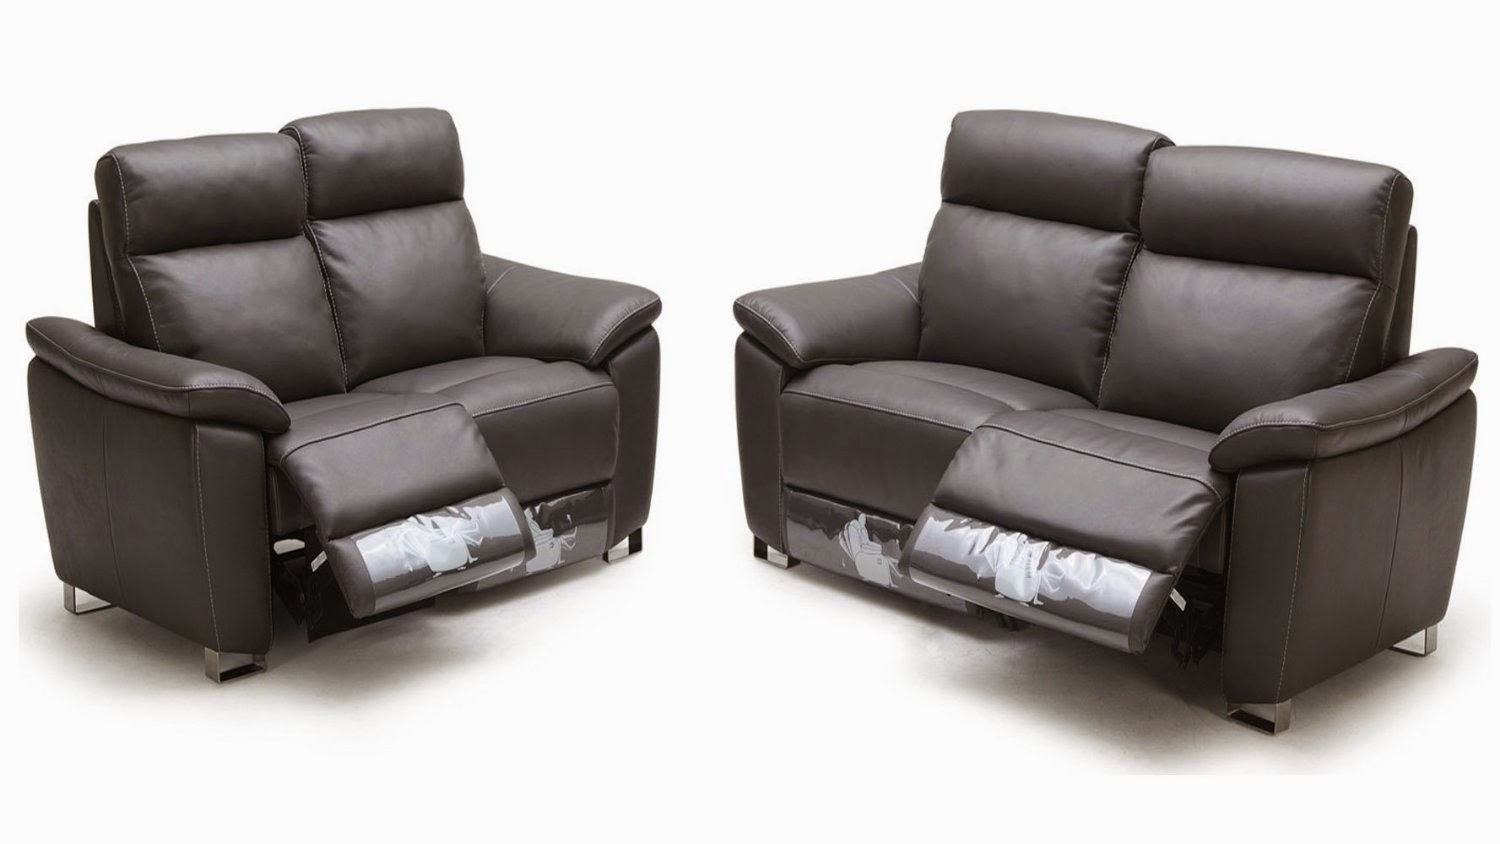 Best Reclining Sofa For The Money: Two Seater Reclining Leather Sofas